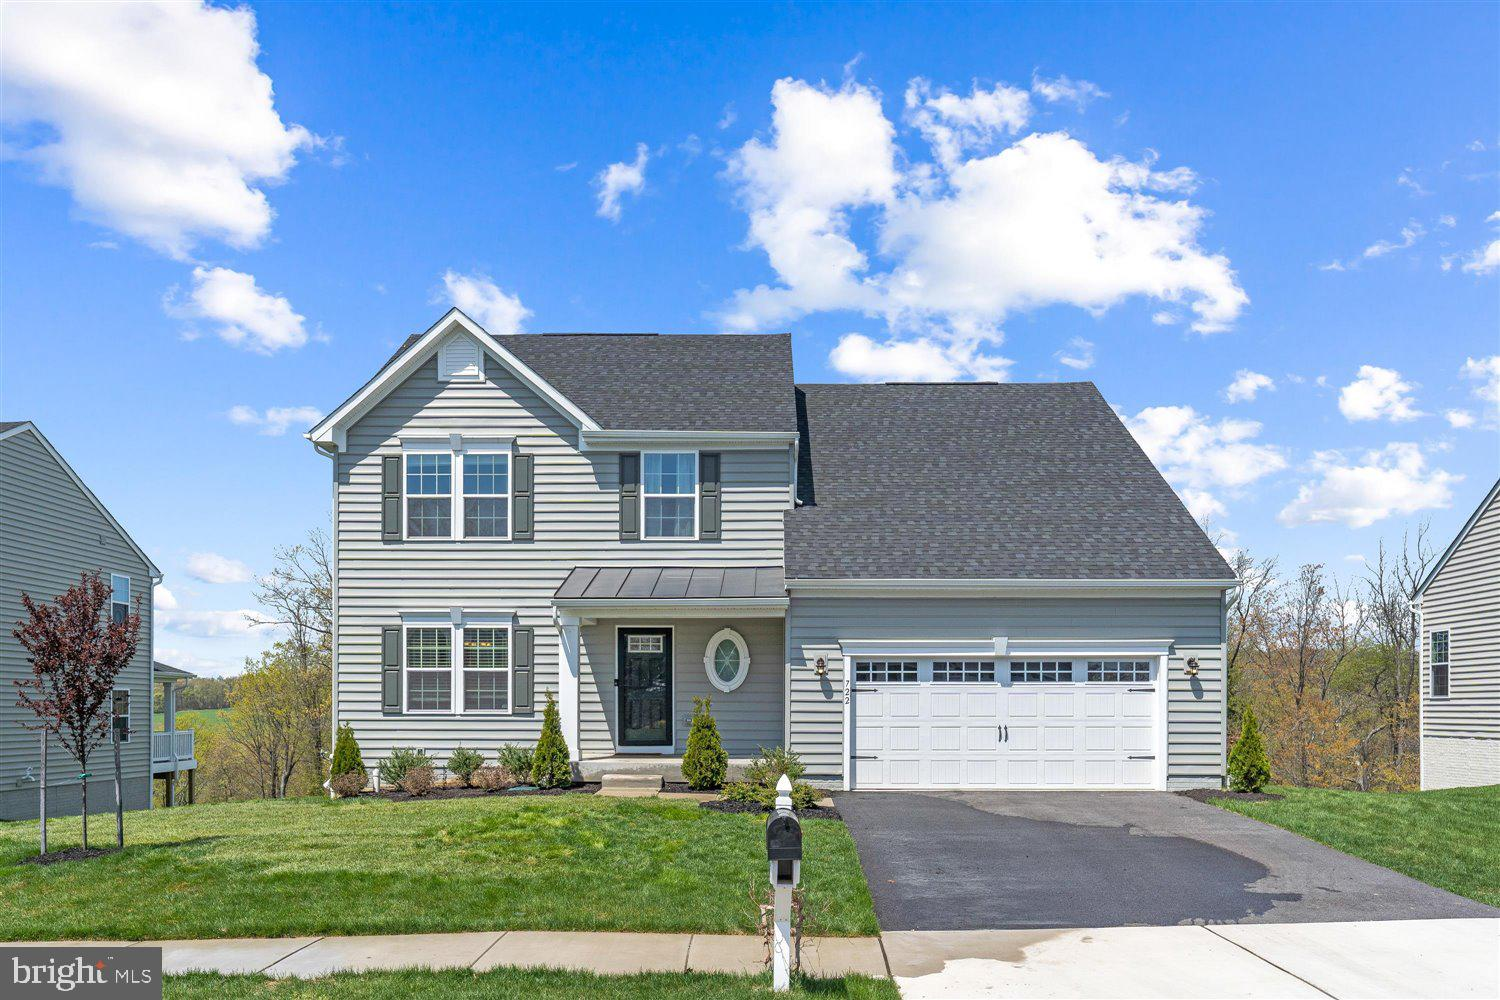 Gorgeous 4 Bedroom 2 Full Bathroom 1 Half Bath Home In Bolton Hill! Walk In And Mesmerized! The Main